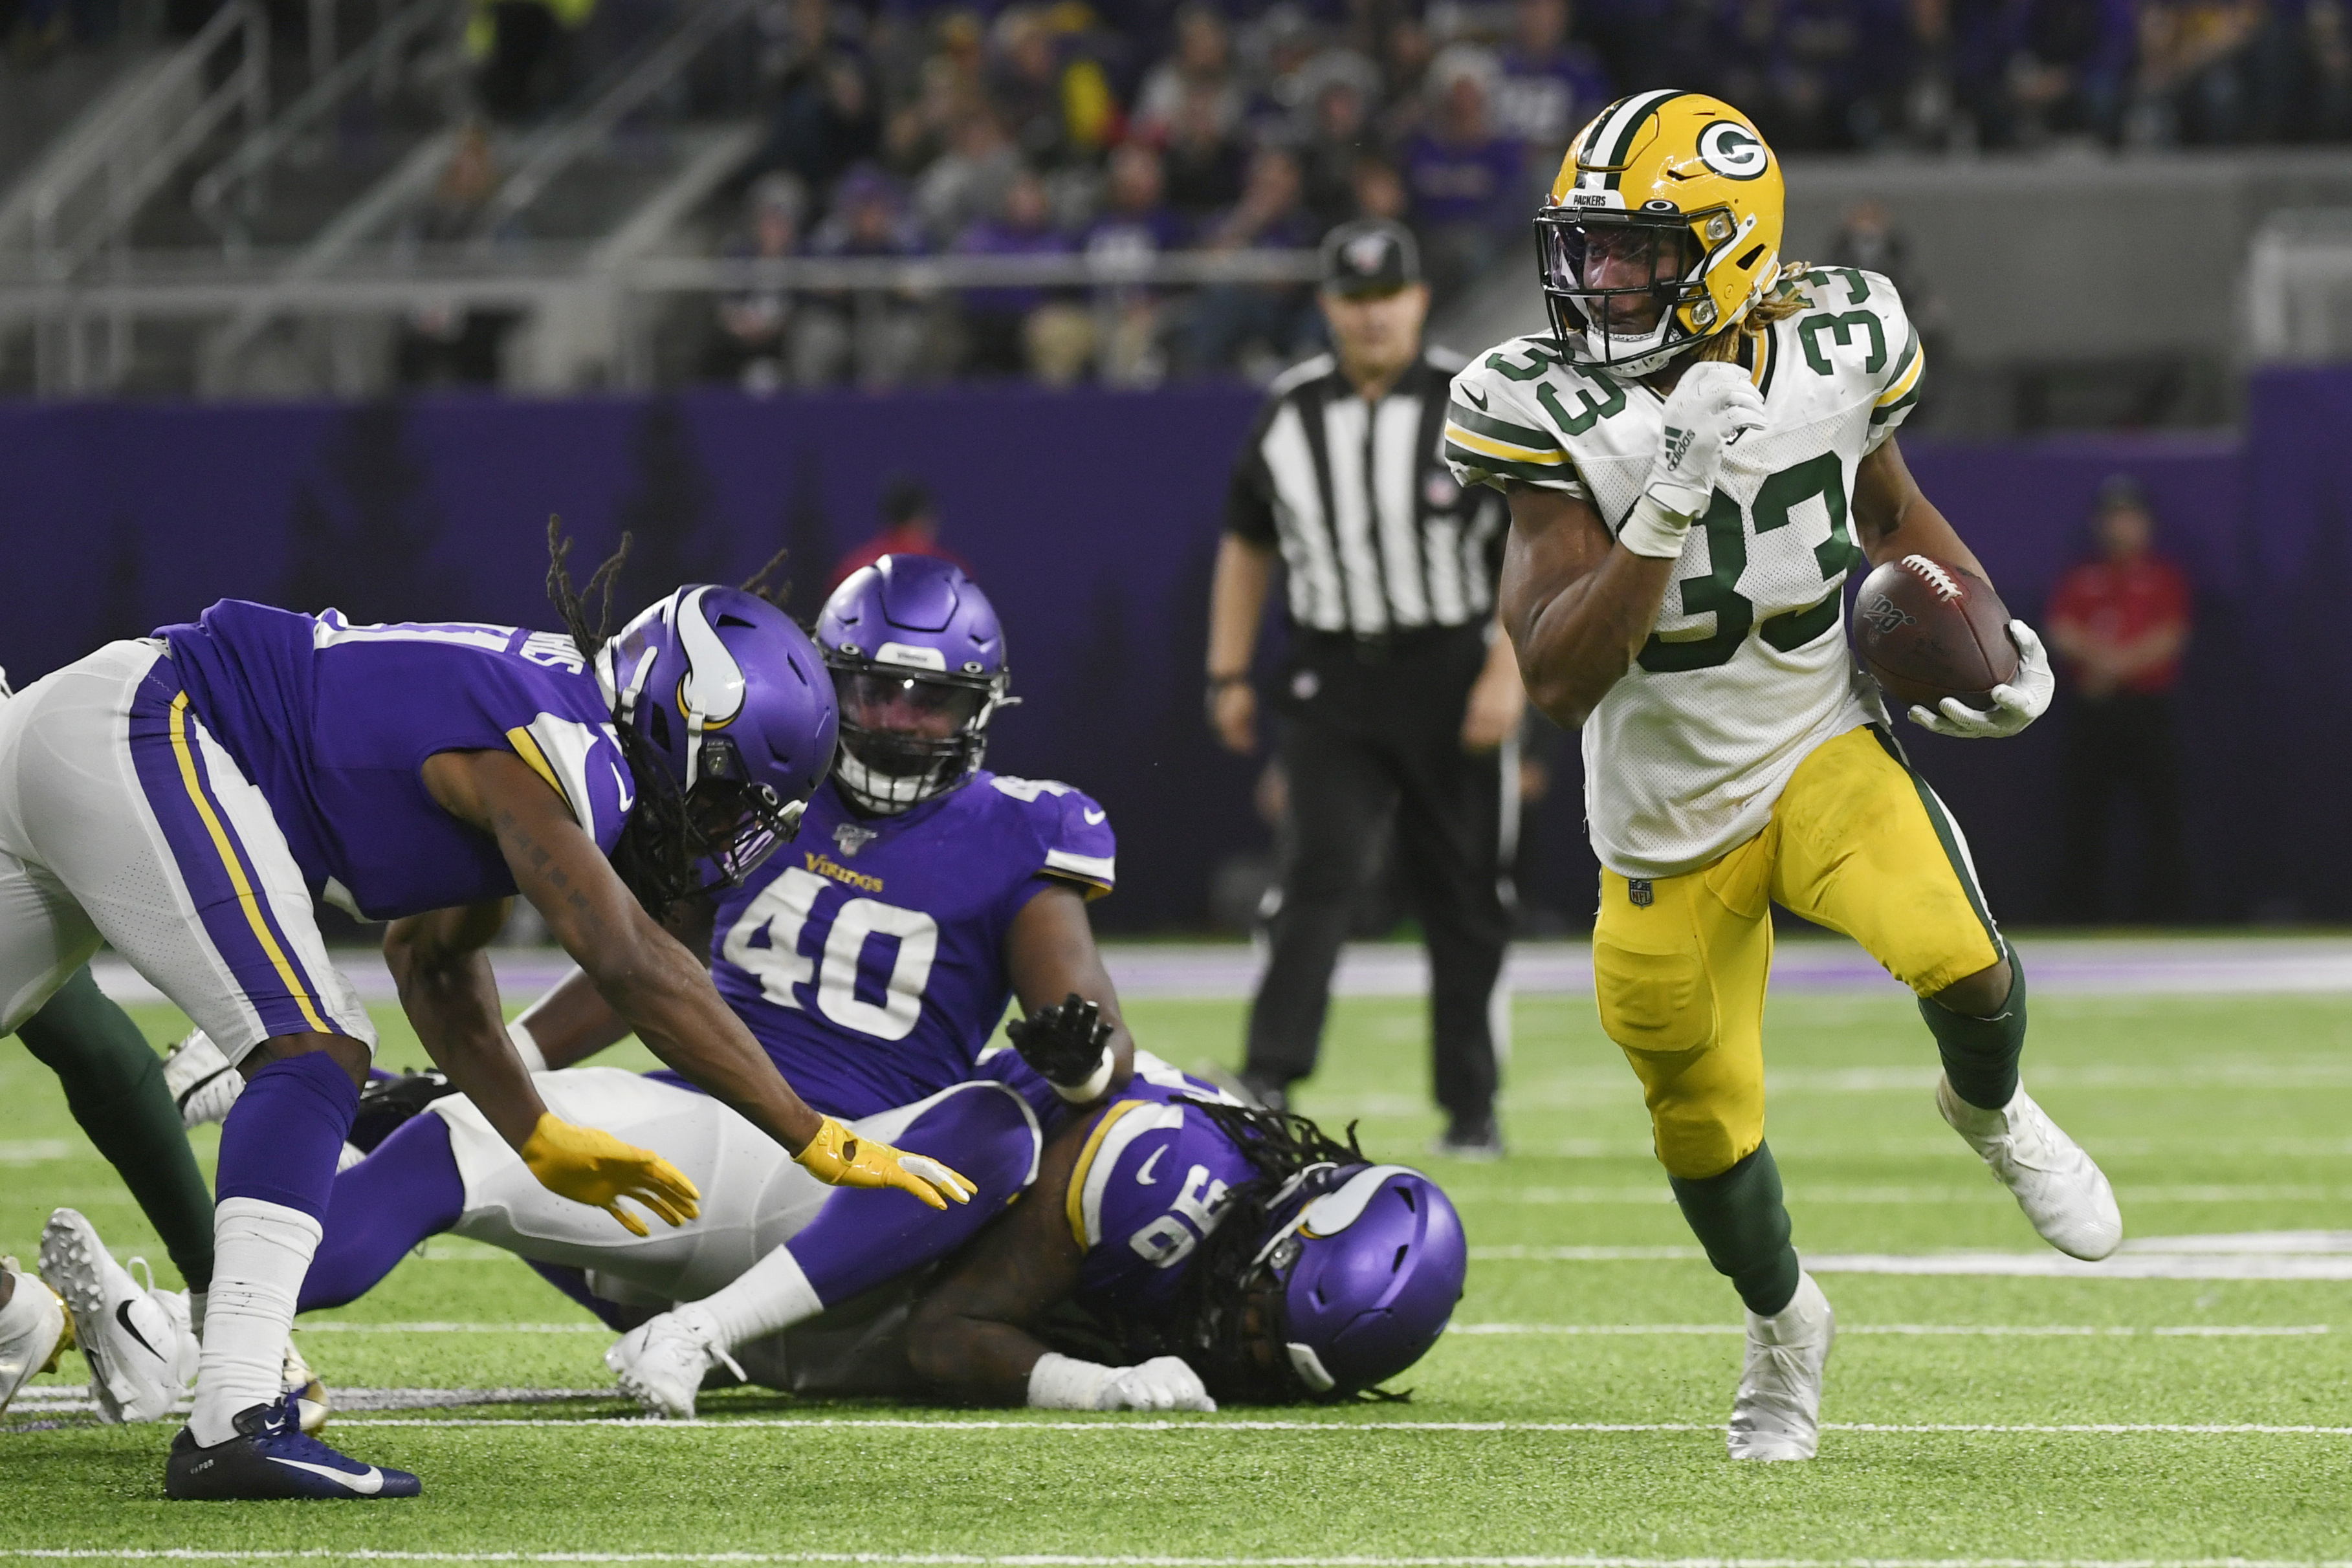 Running back Aaron Jones had a big night as the Packers clinched the division title. (AP Photo/Craig Lassig)